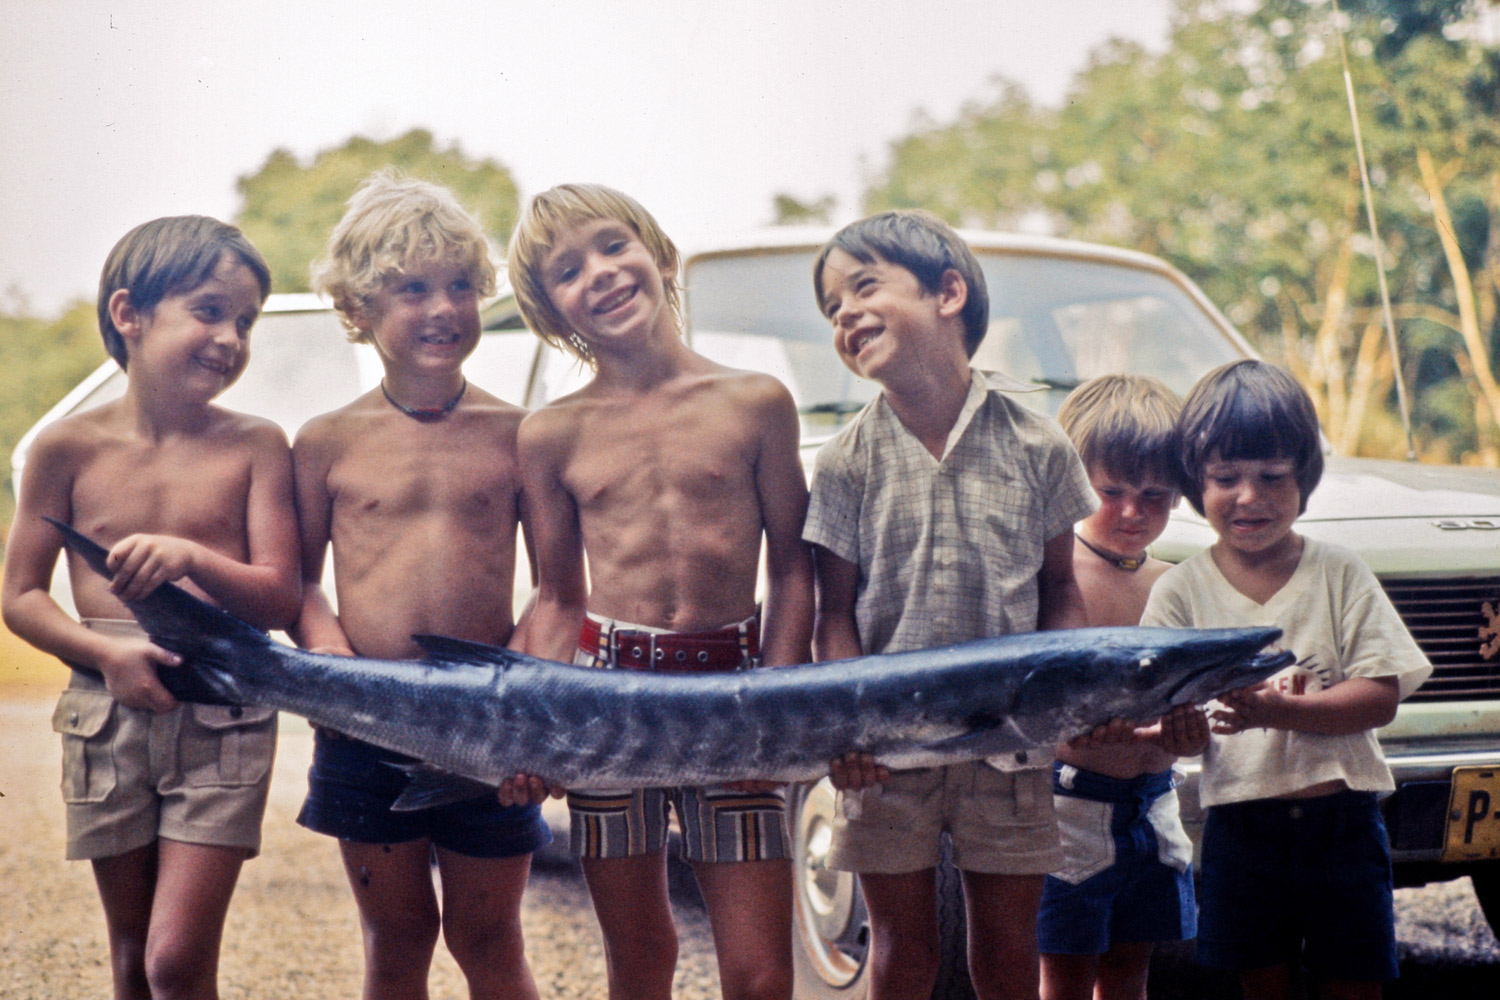 Canadian kids with barracuda. Exchem Compound, 1978.